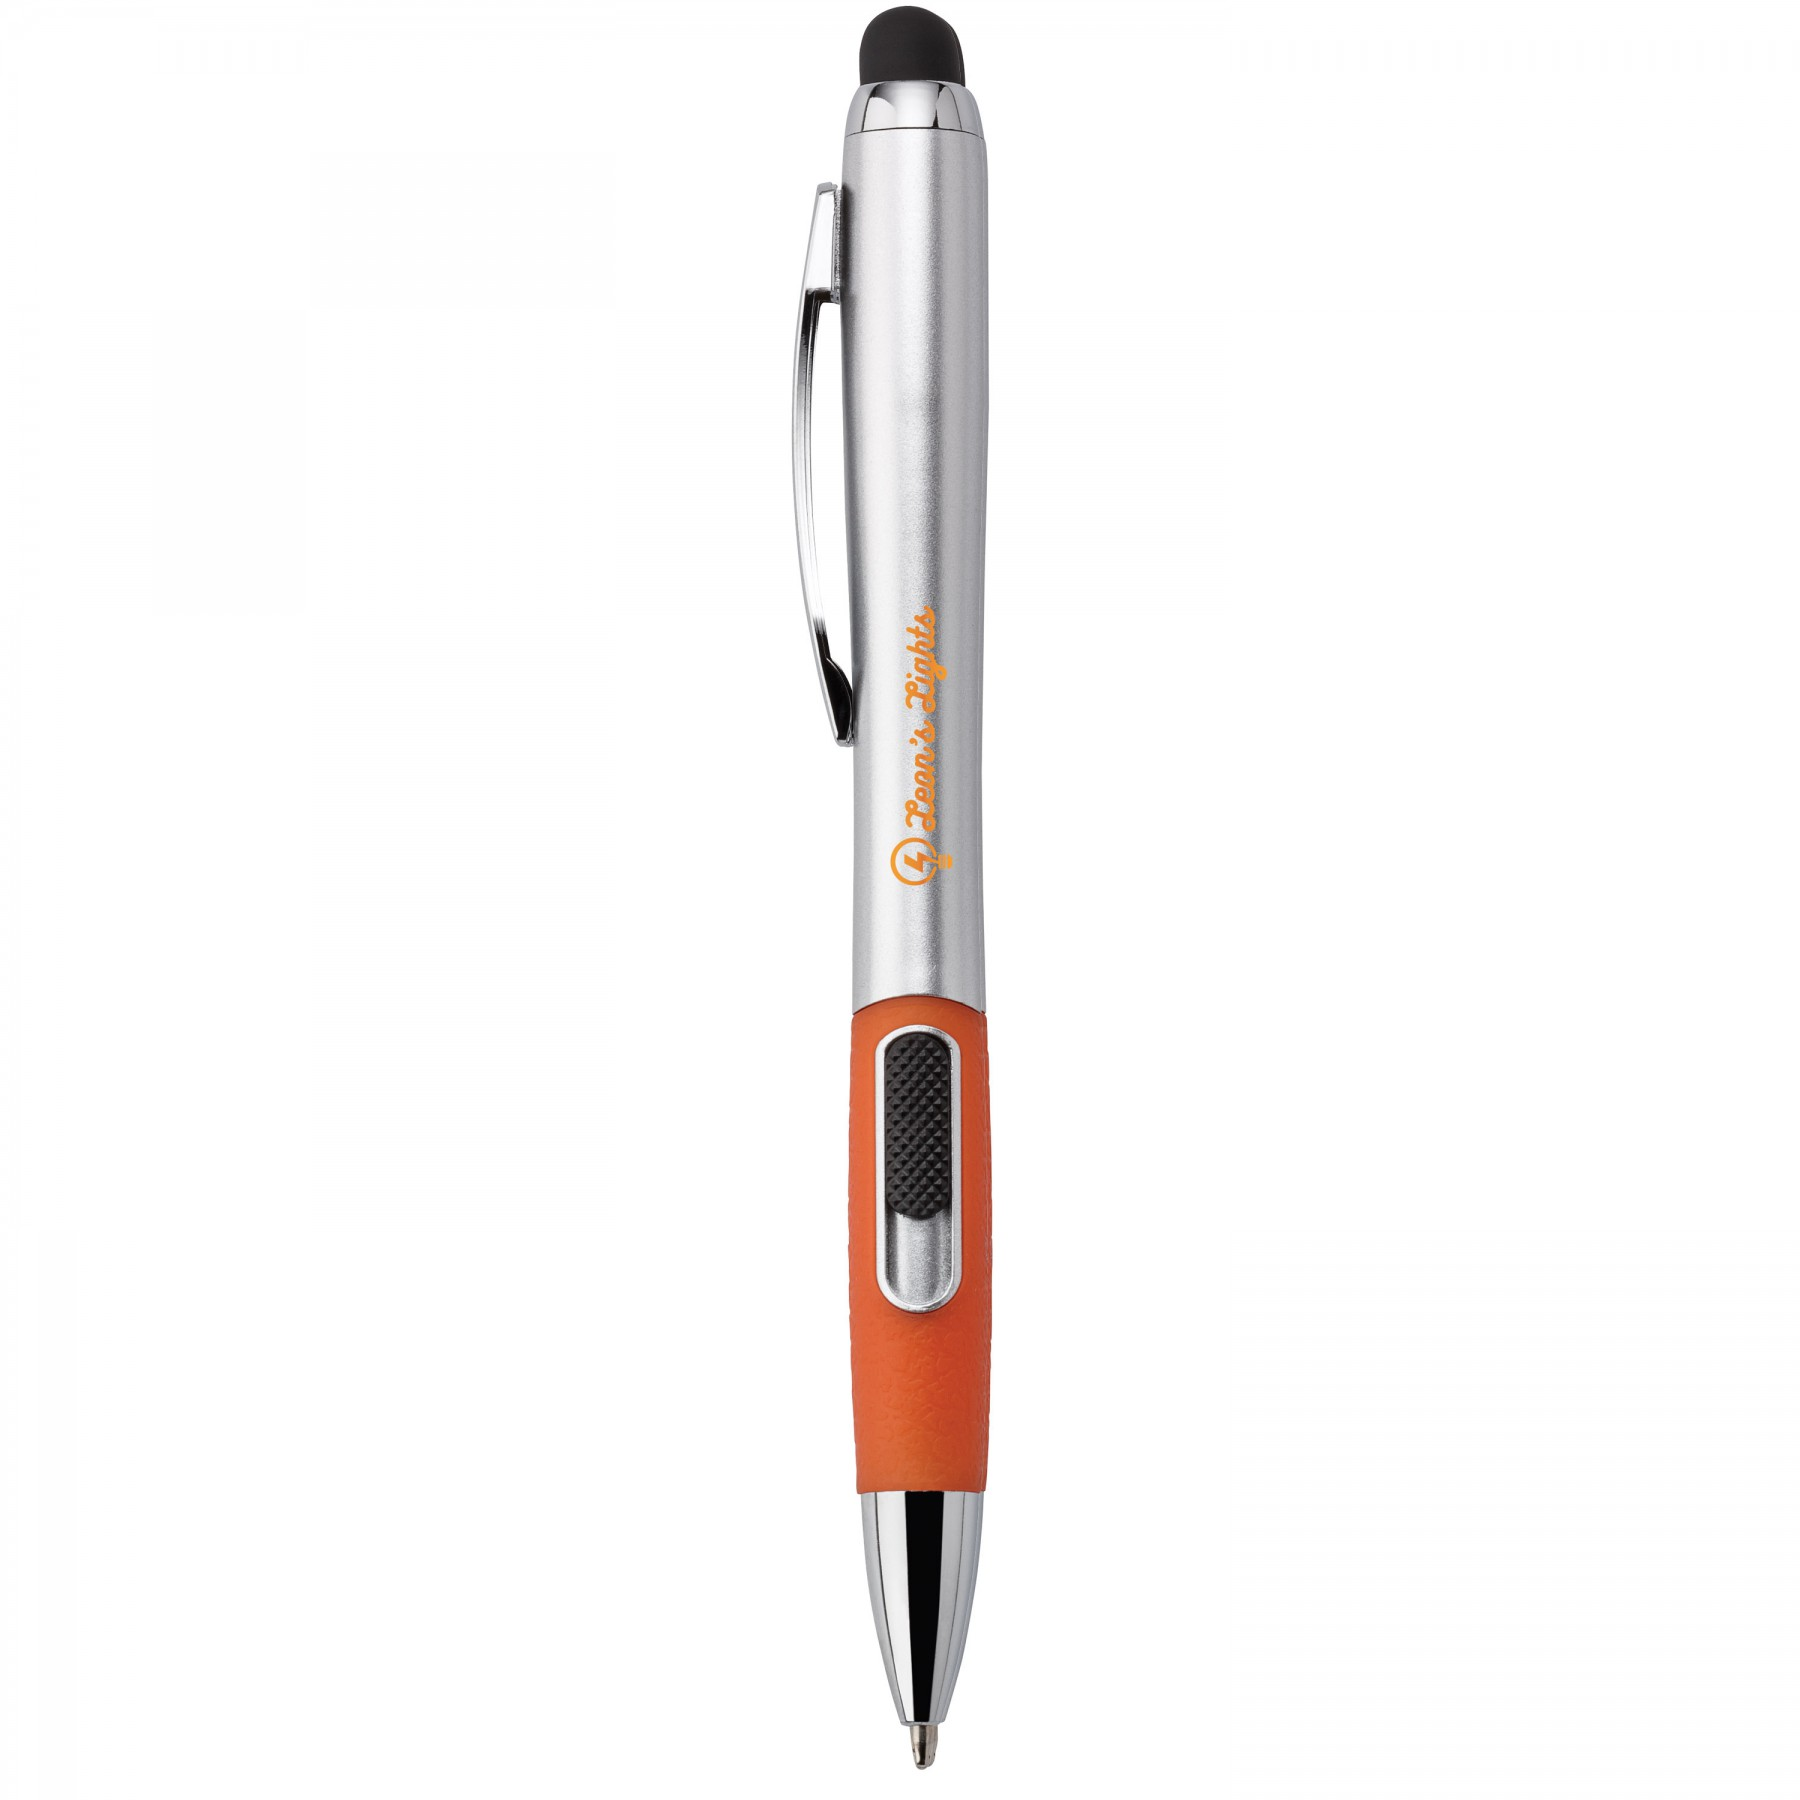 Ophelia 3-In-1 Ballpoint Pen/Stylus With Backlight, I145, Laser Engraved